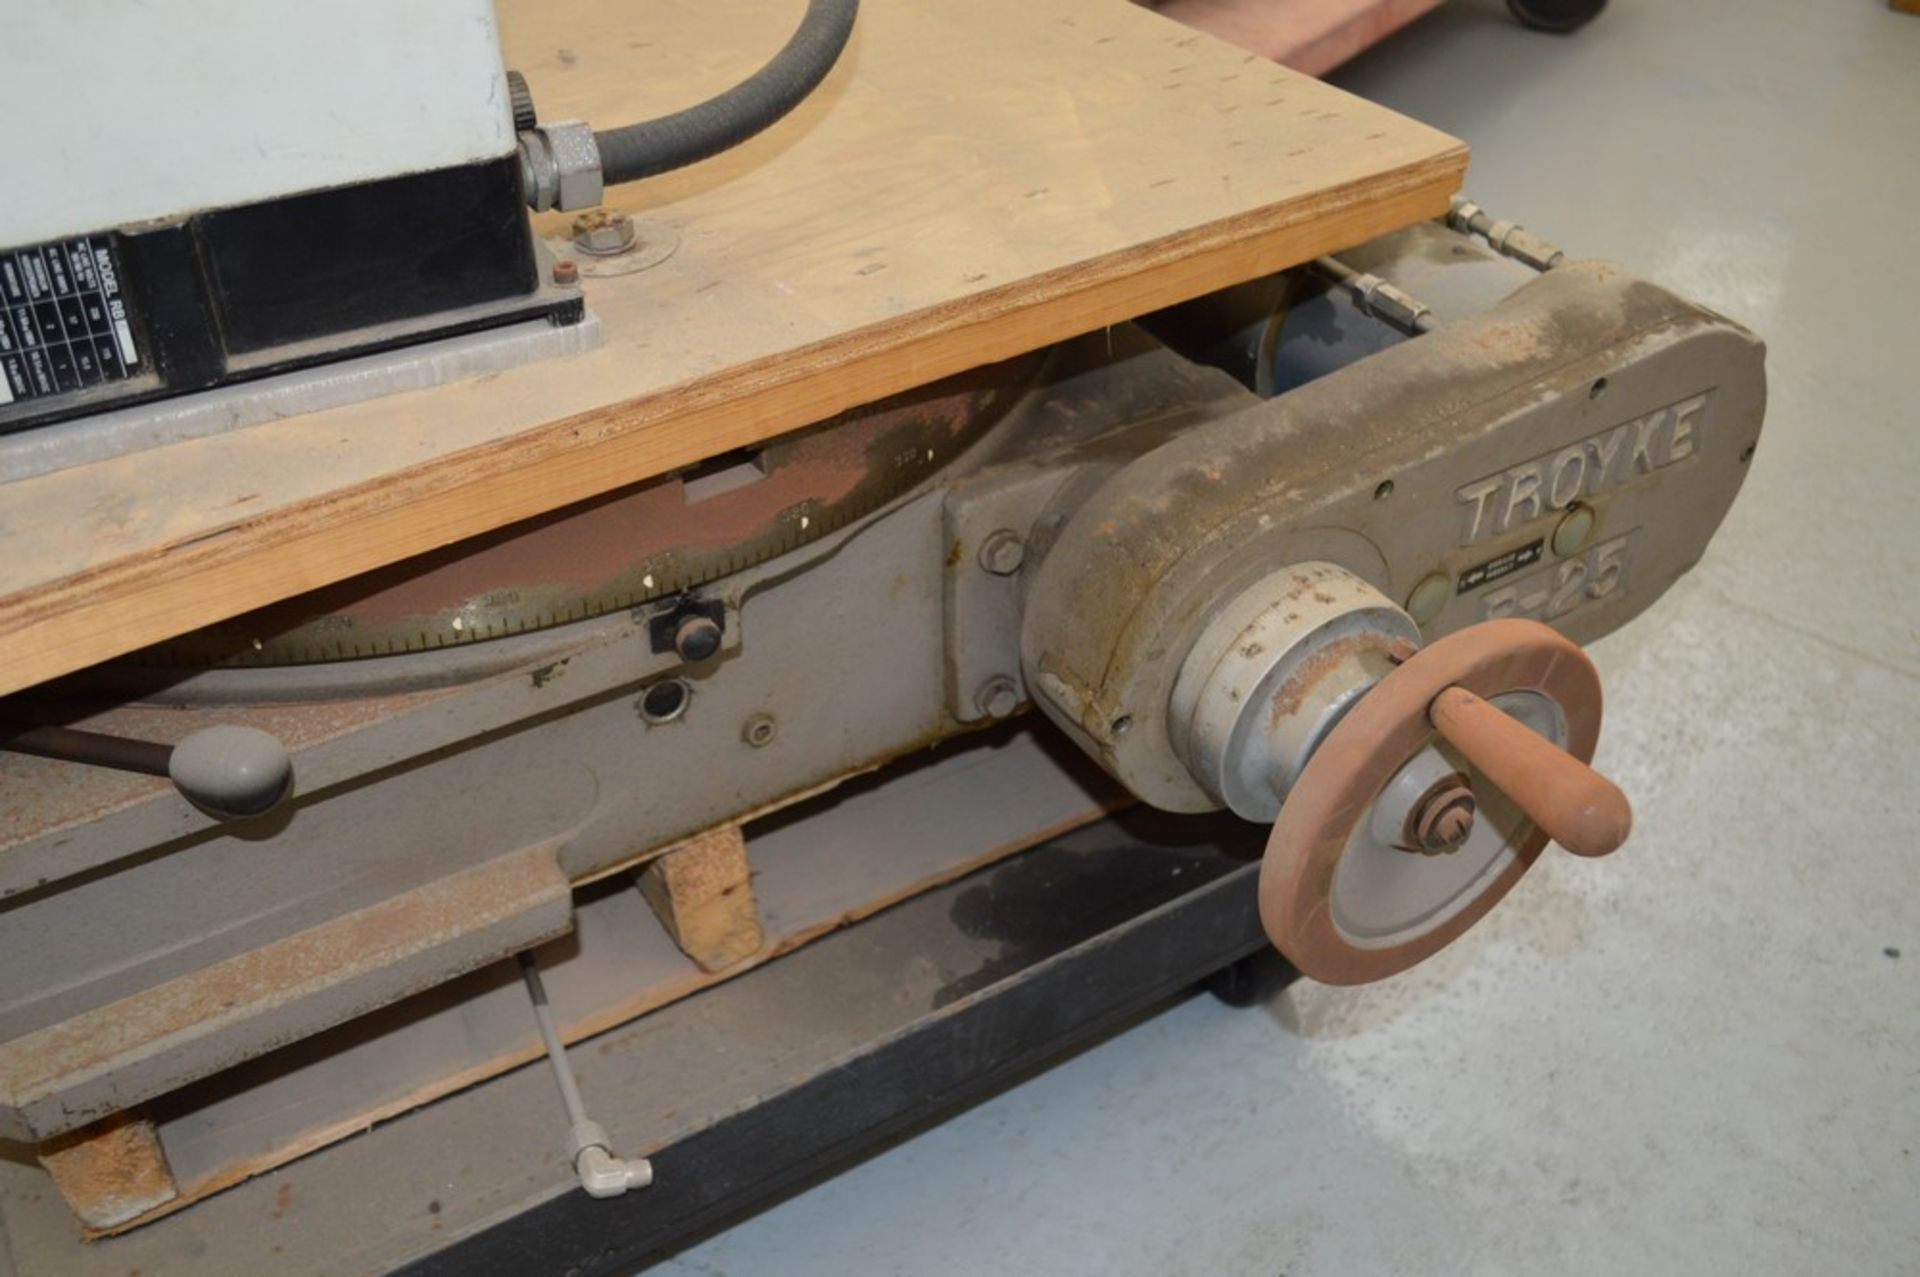 Troyke Model P25 full 4th electric rotary table with low speed gear, 1 reducer and motor speed - Image 3 of 6